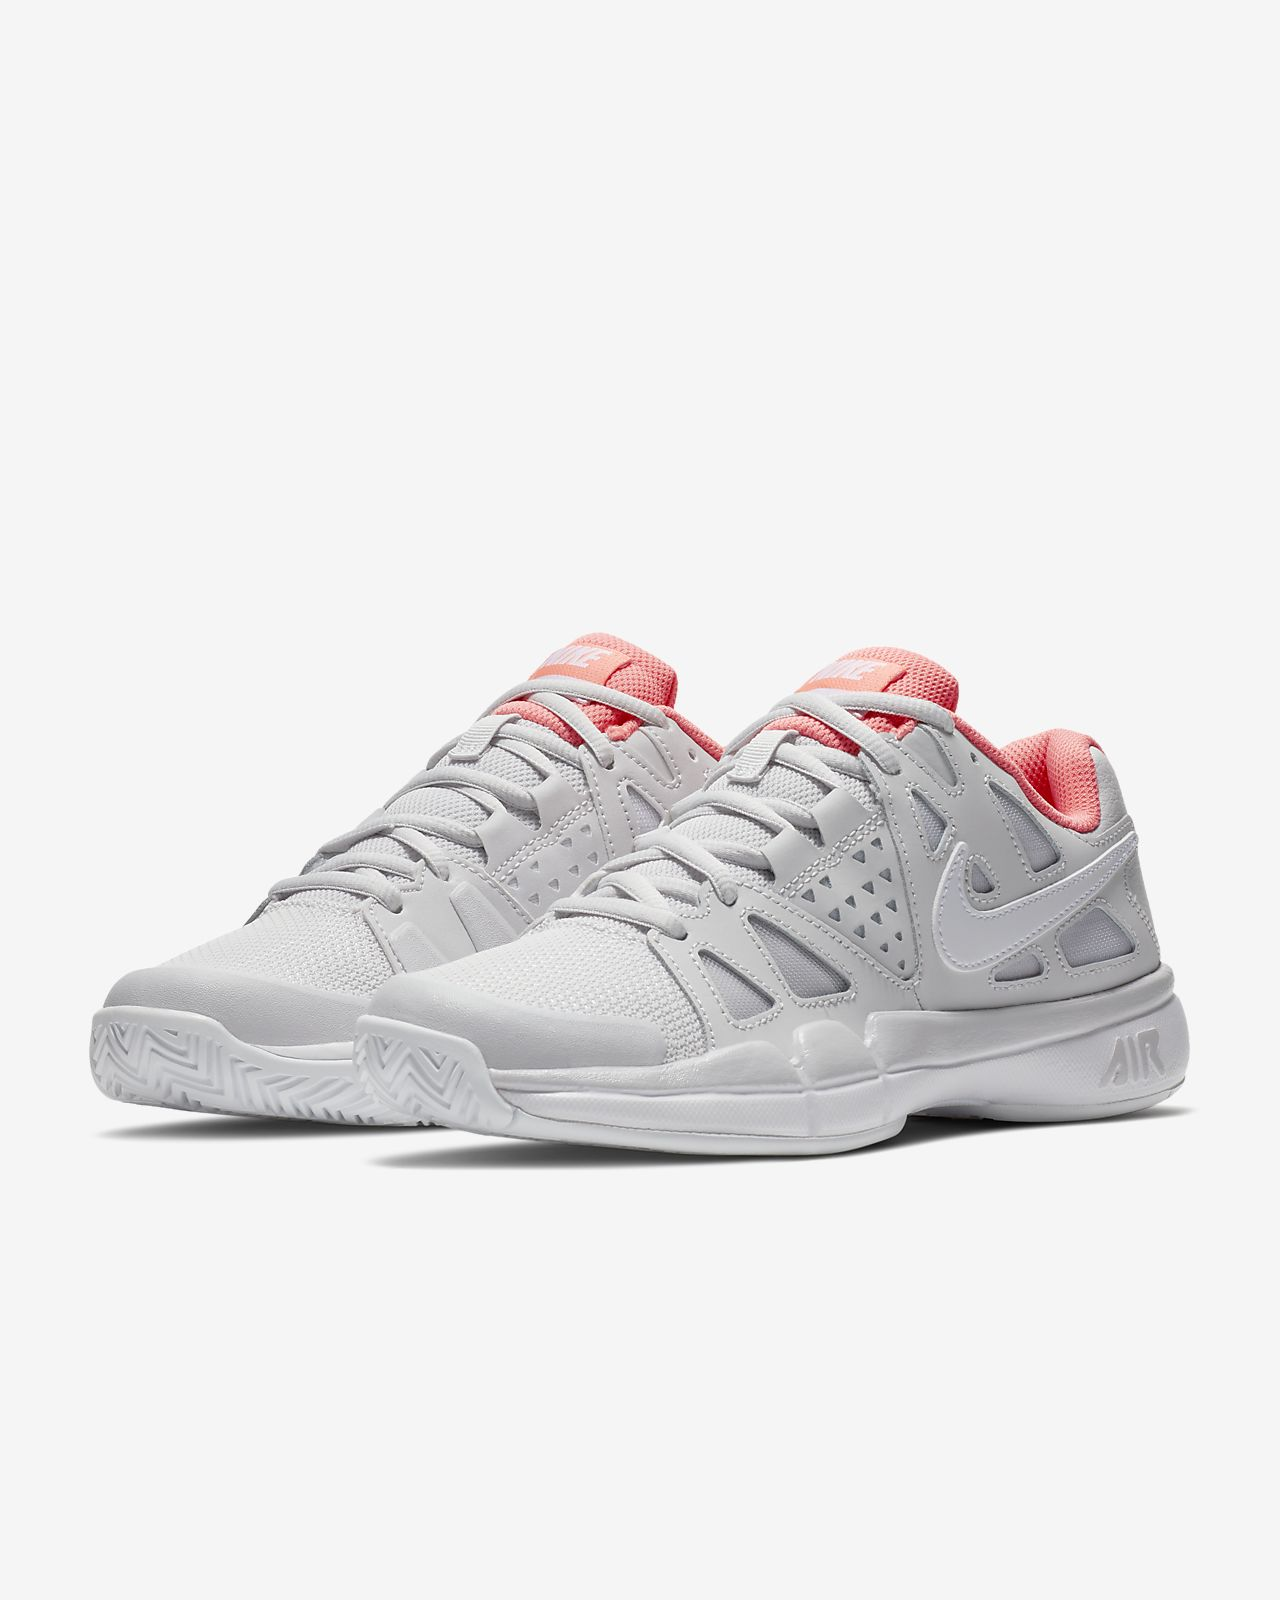 ... NikeCourt Air Vapor Advantage Women's Tennis Shoe